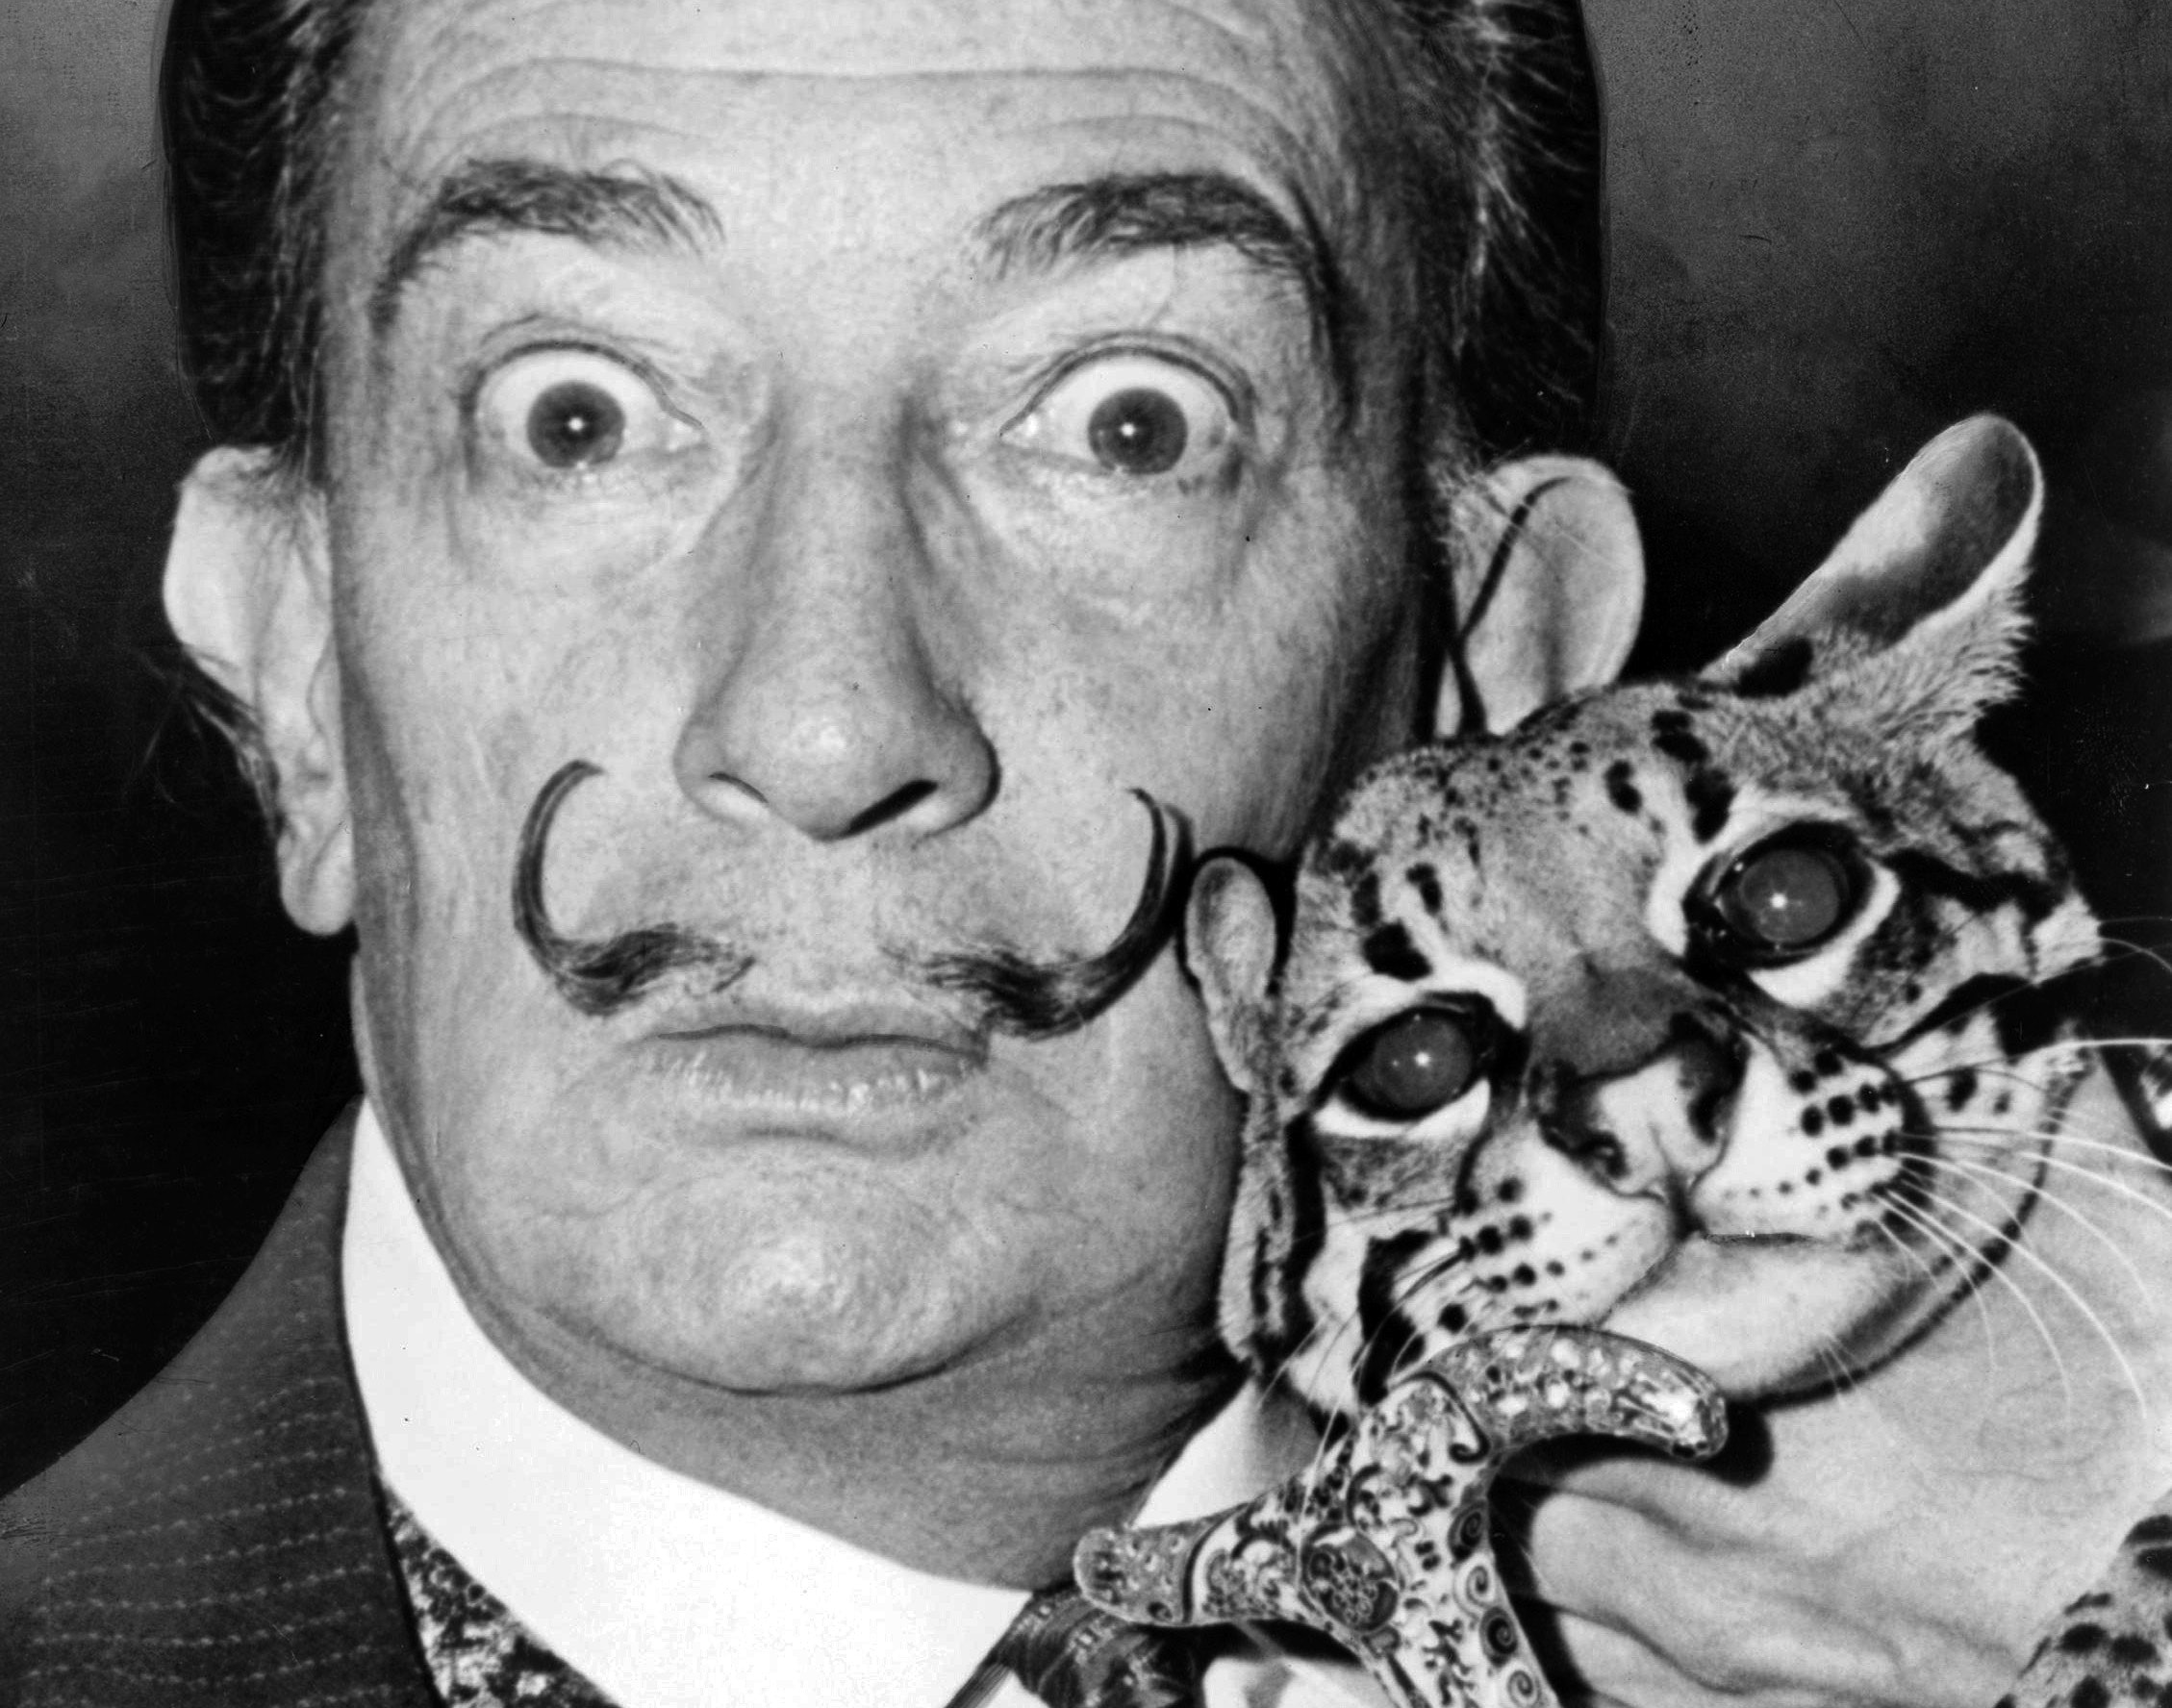 Catalonia makes up with Salvador Dalí after a turbulent relationship